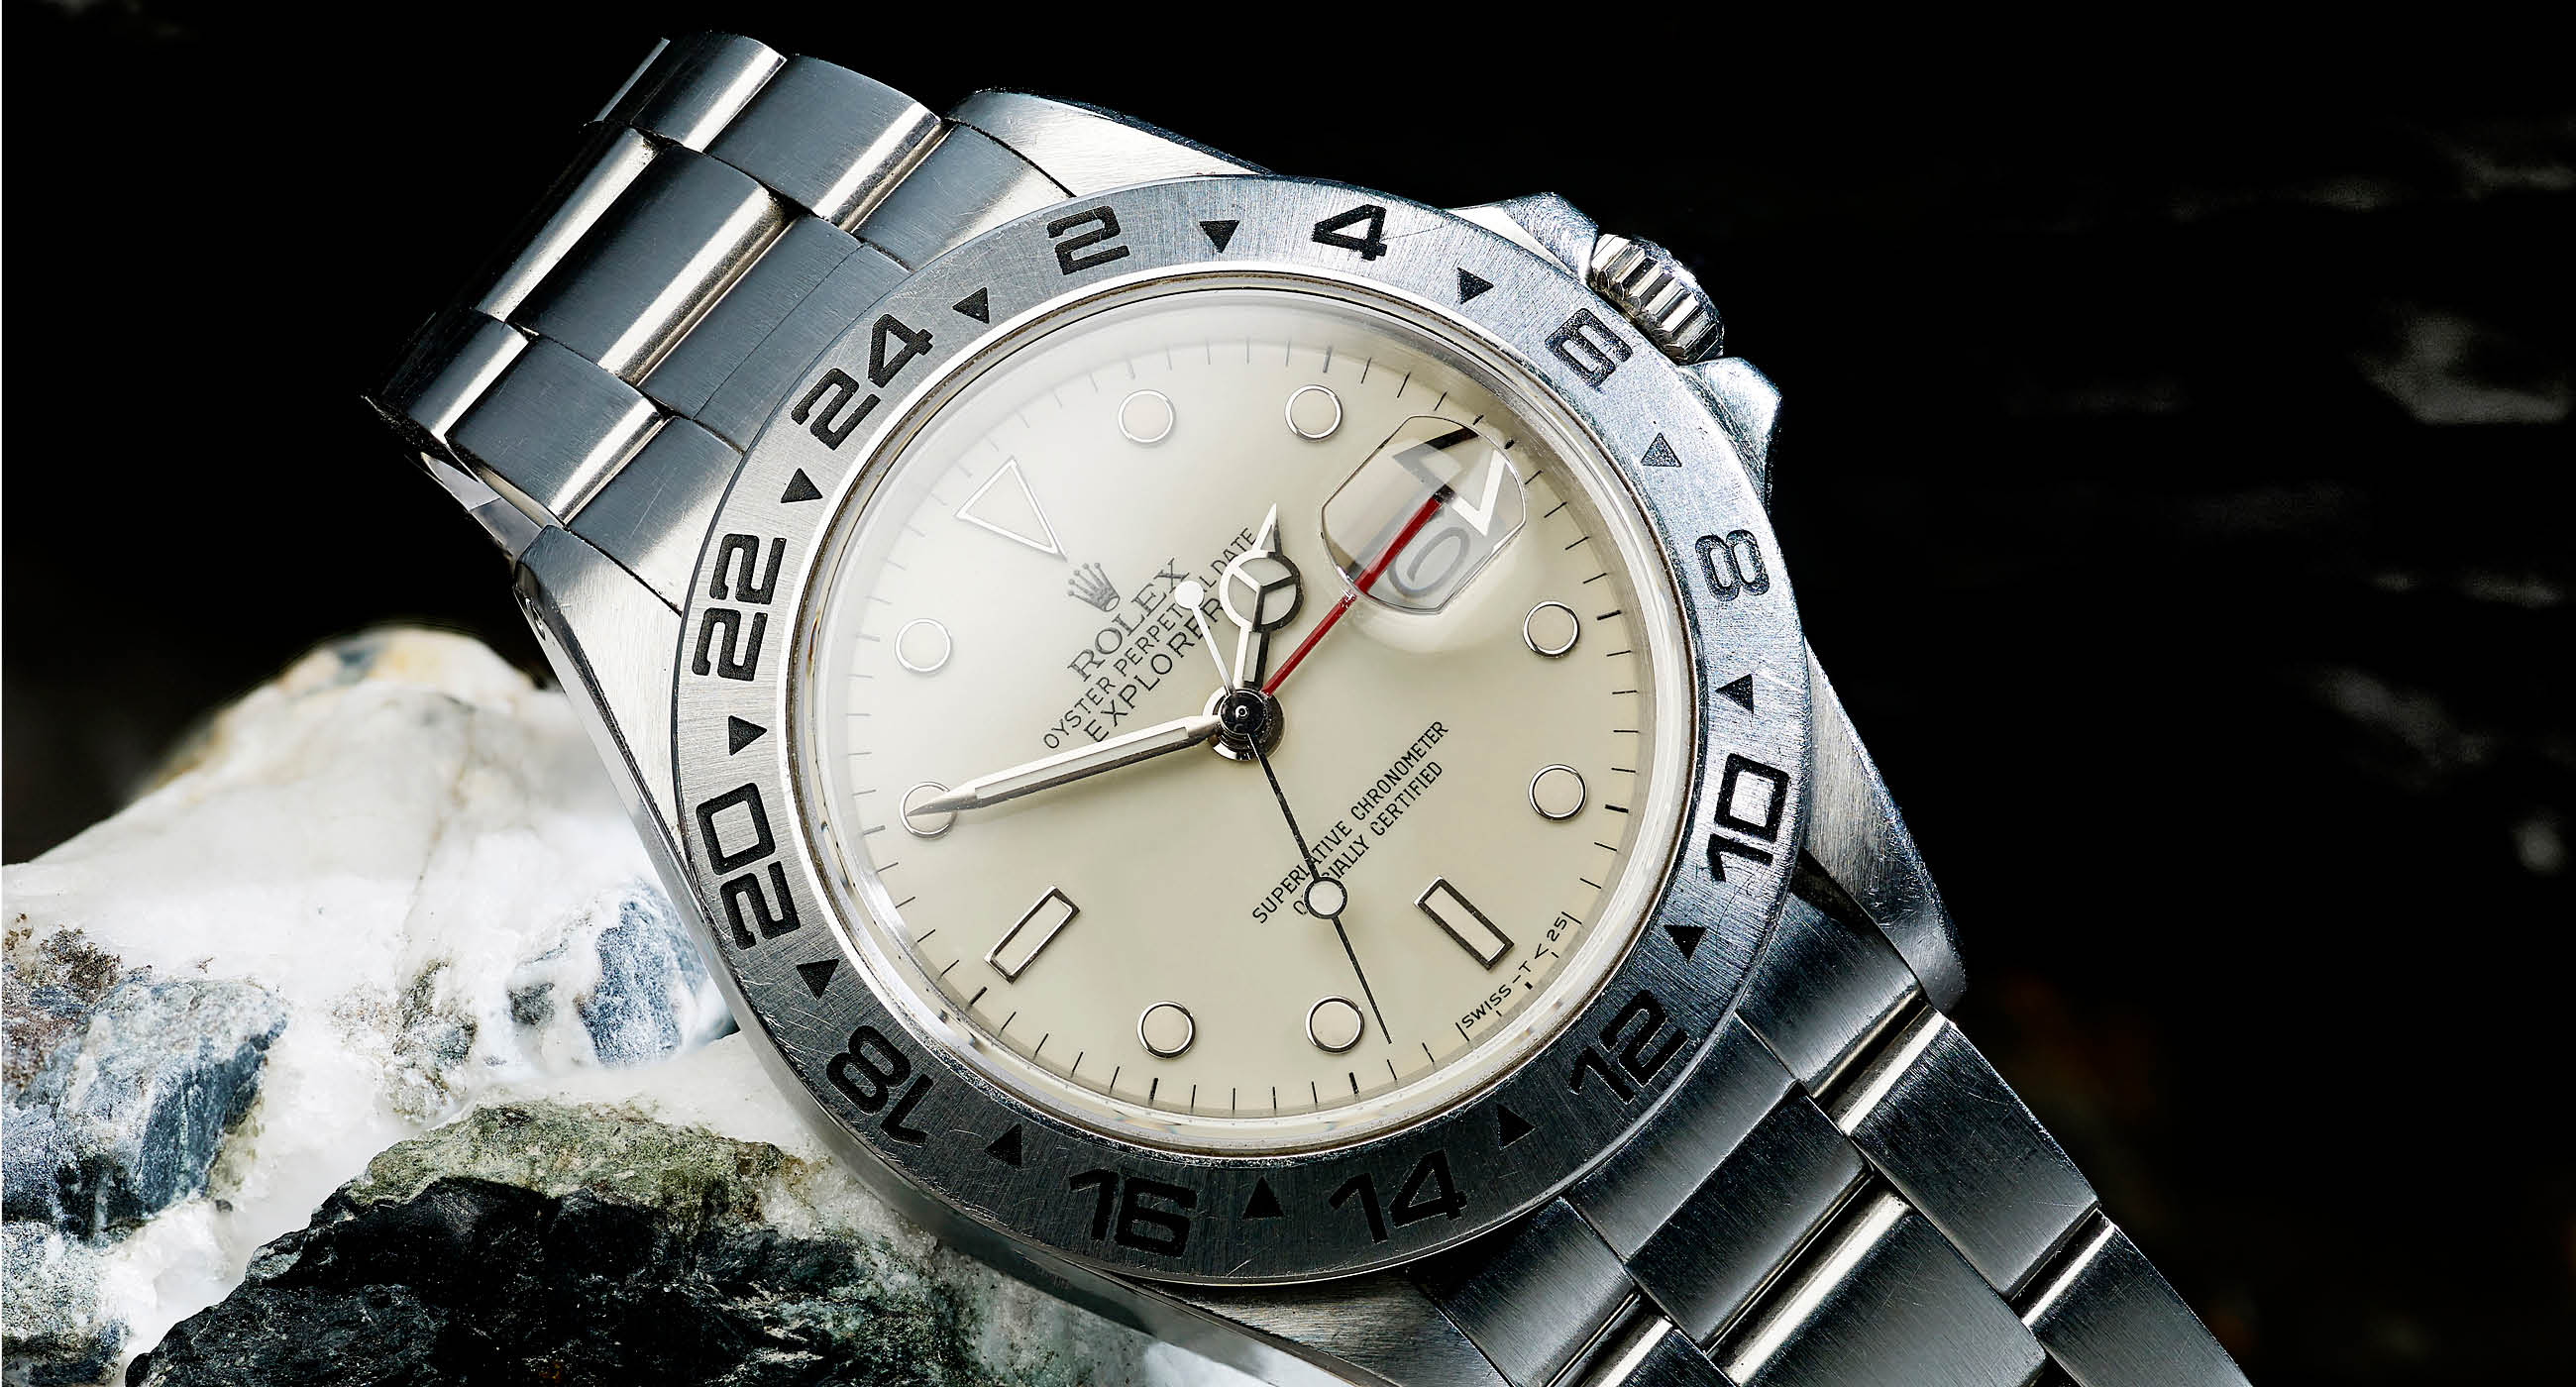 Take A Look At the Swiss Made Luxury Rolex Explorer Replica Watches